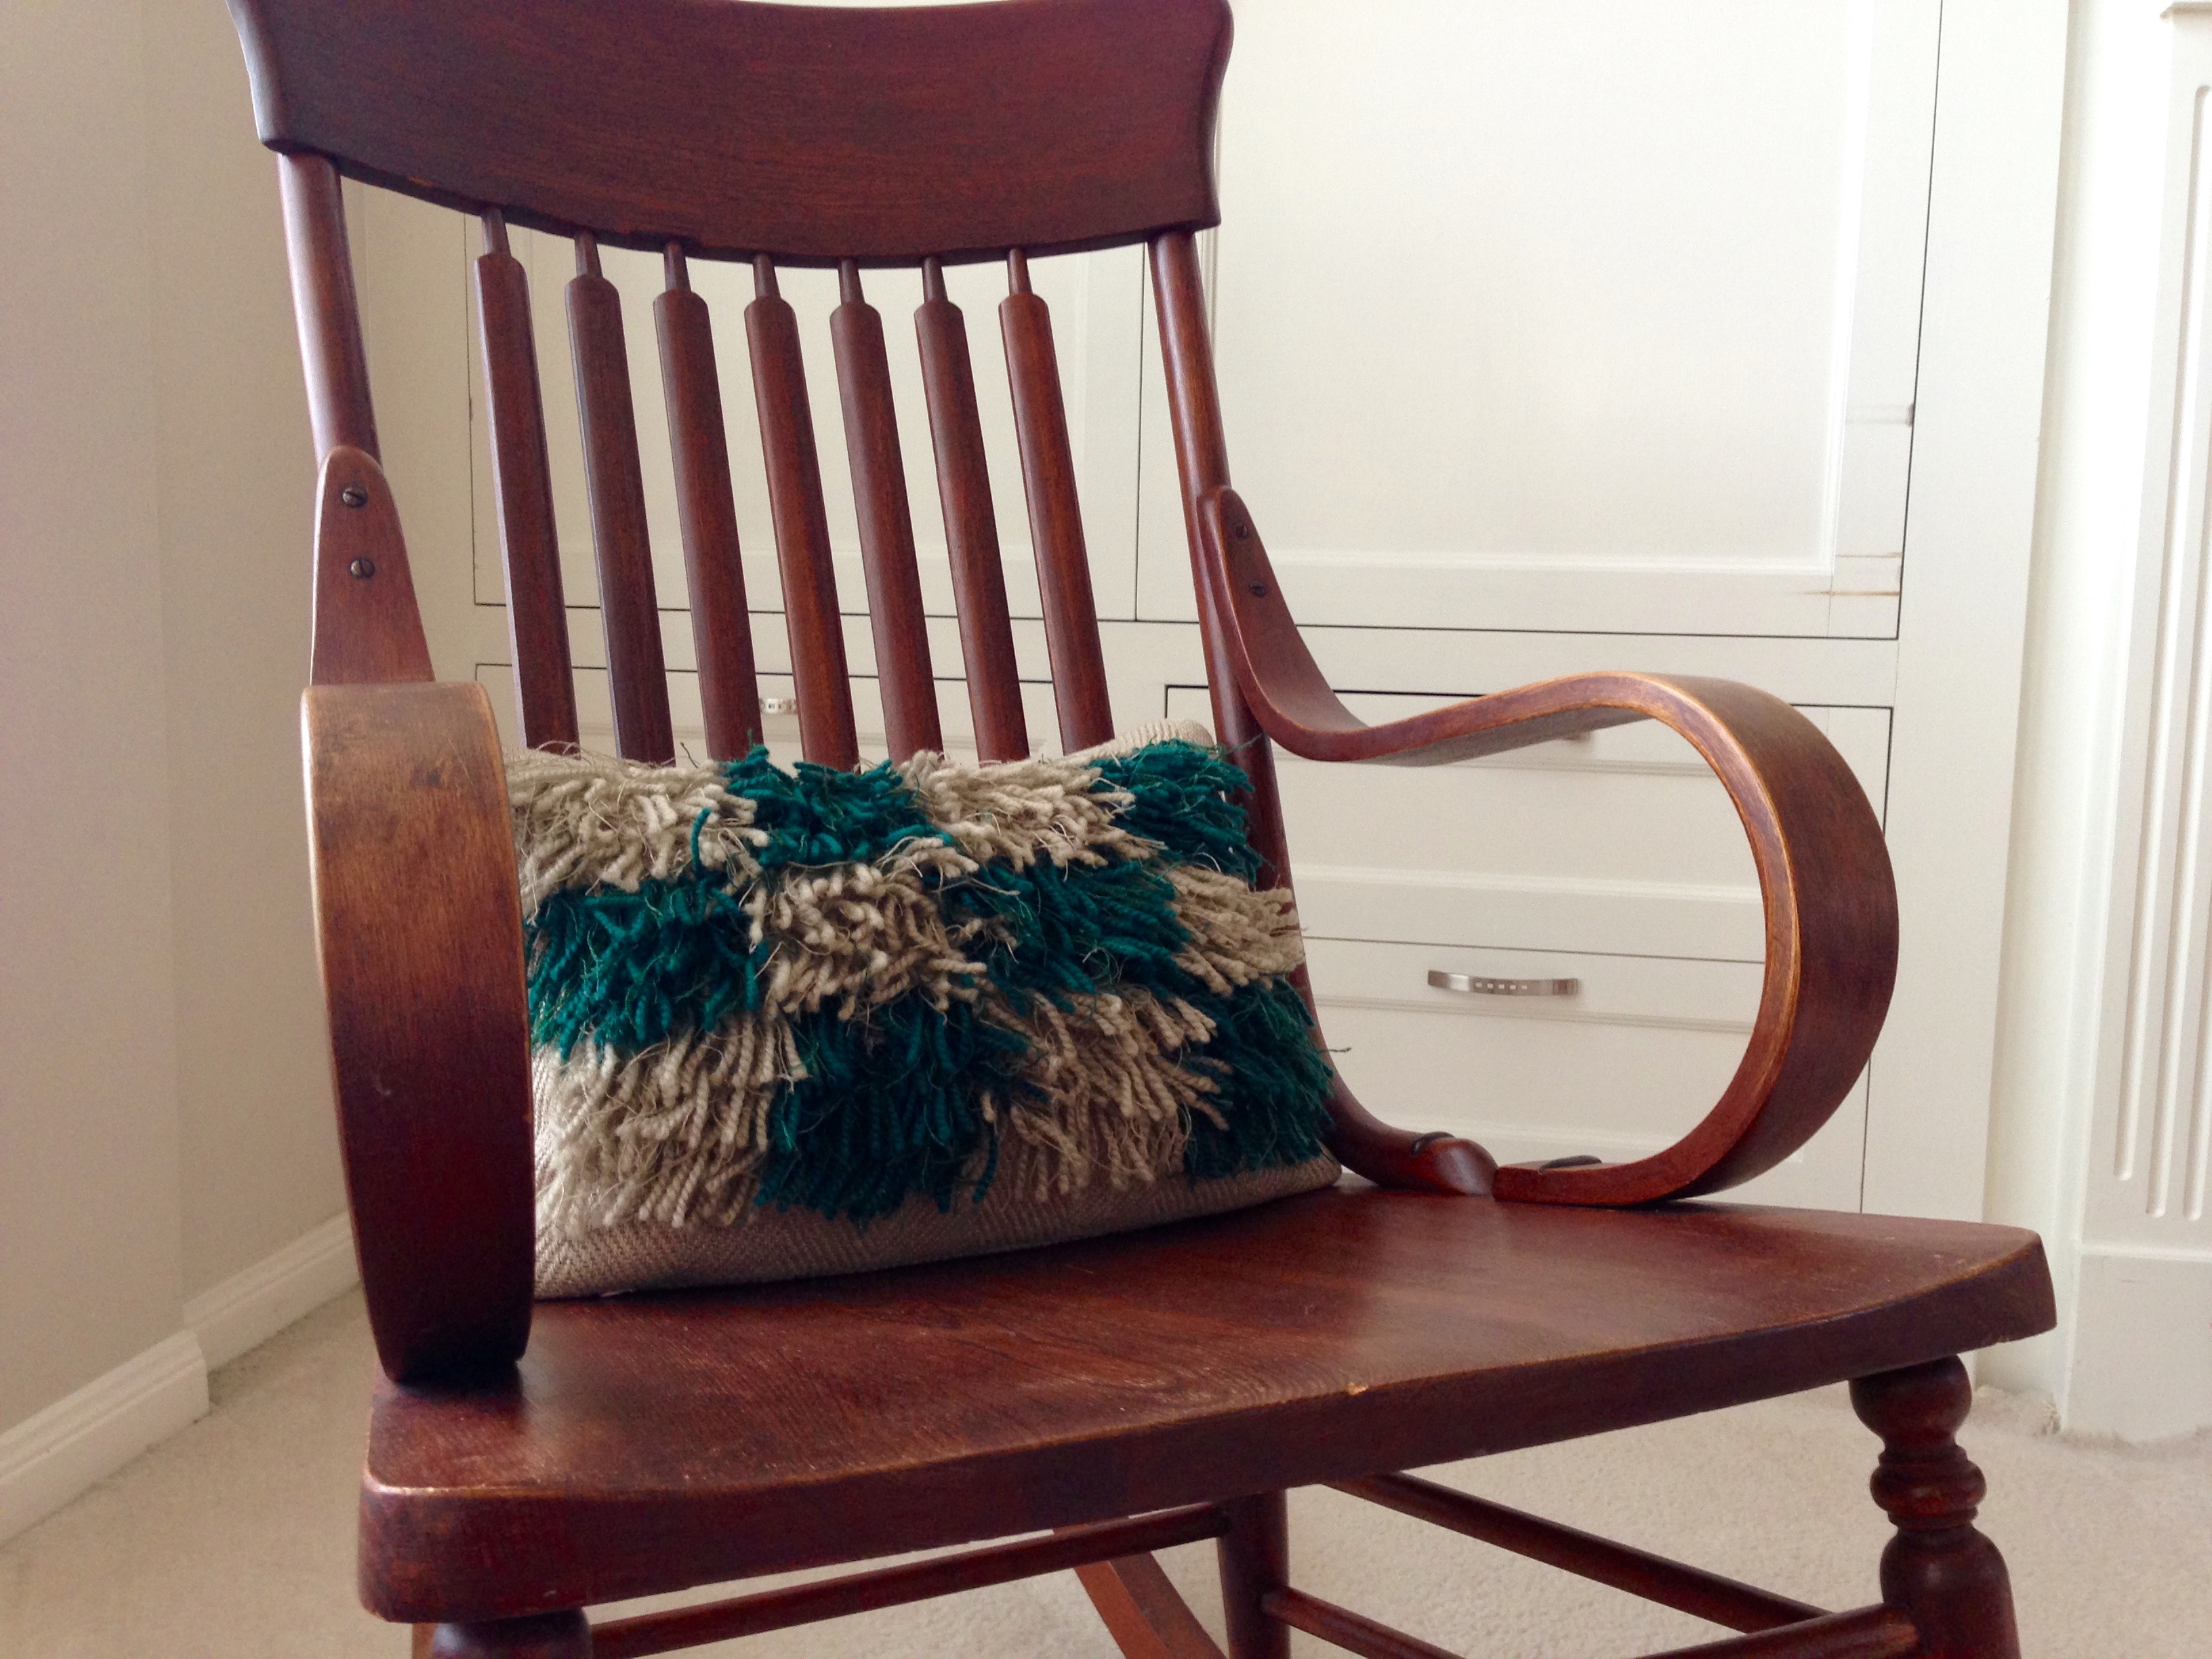 grandma rocking chair kids reclining rya pillow in the  warped for good